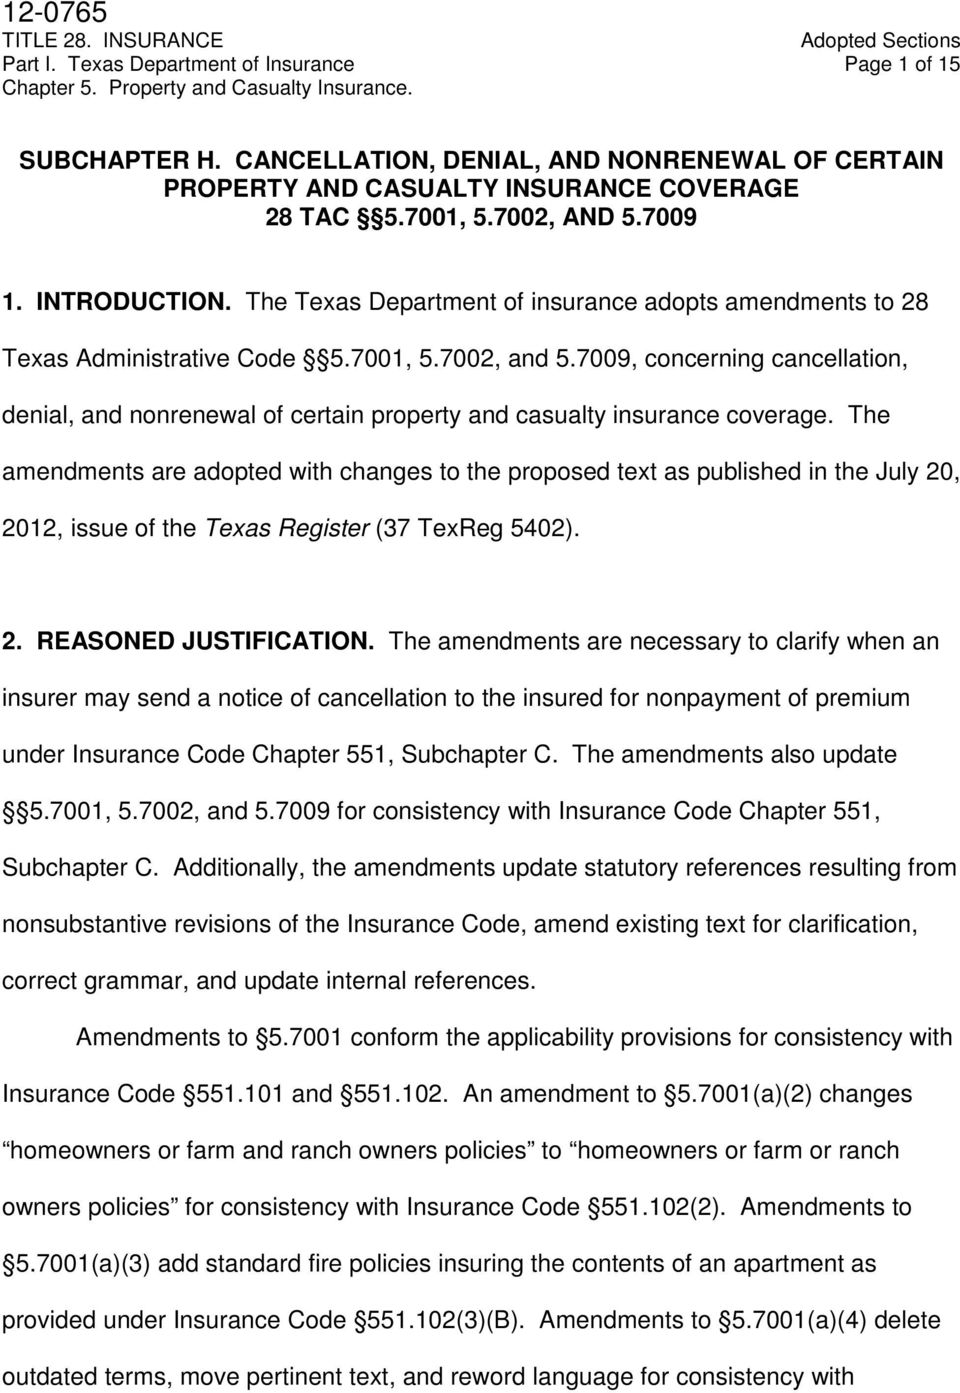 7009, concerning cancellation, denial, and nonrenewal of certain property and casualty insurance coverage.